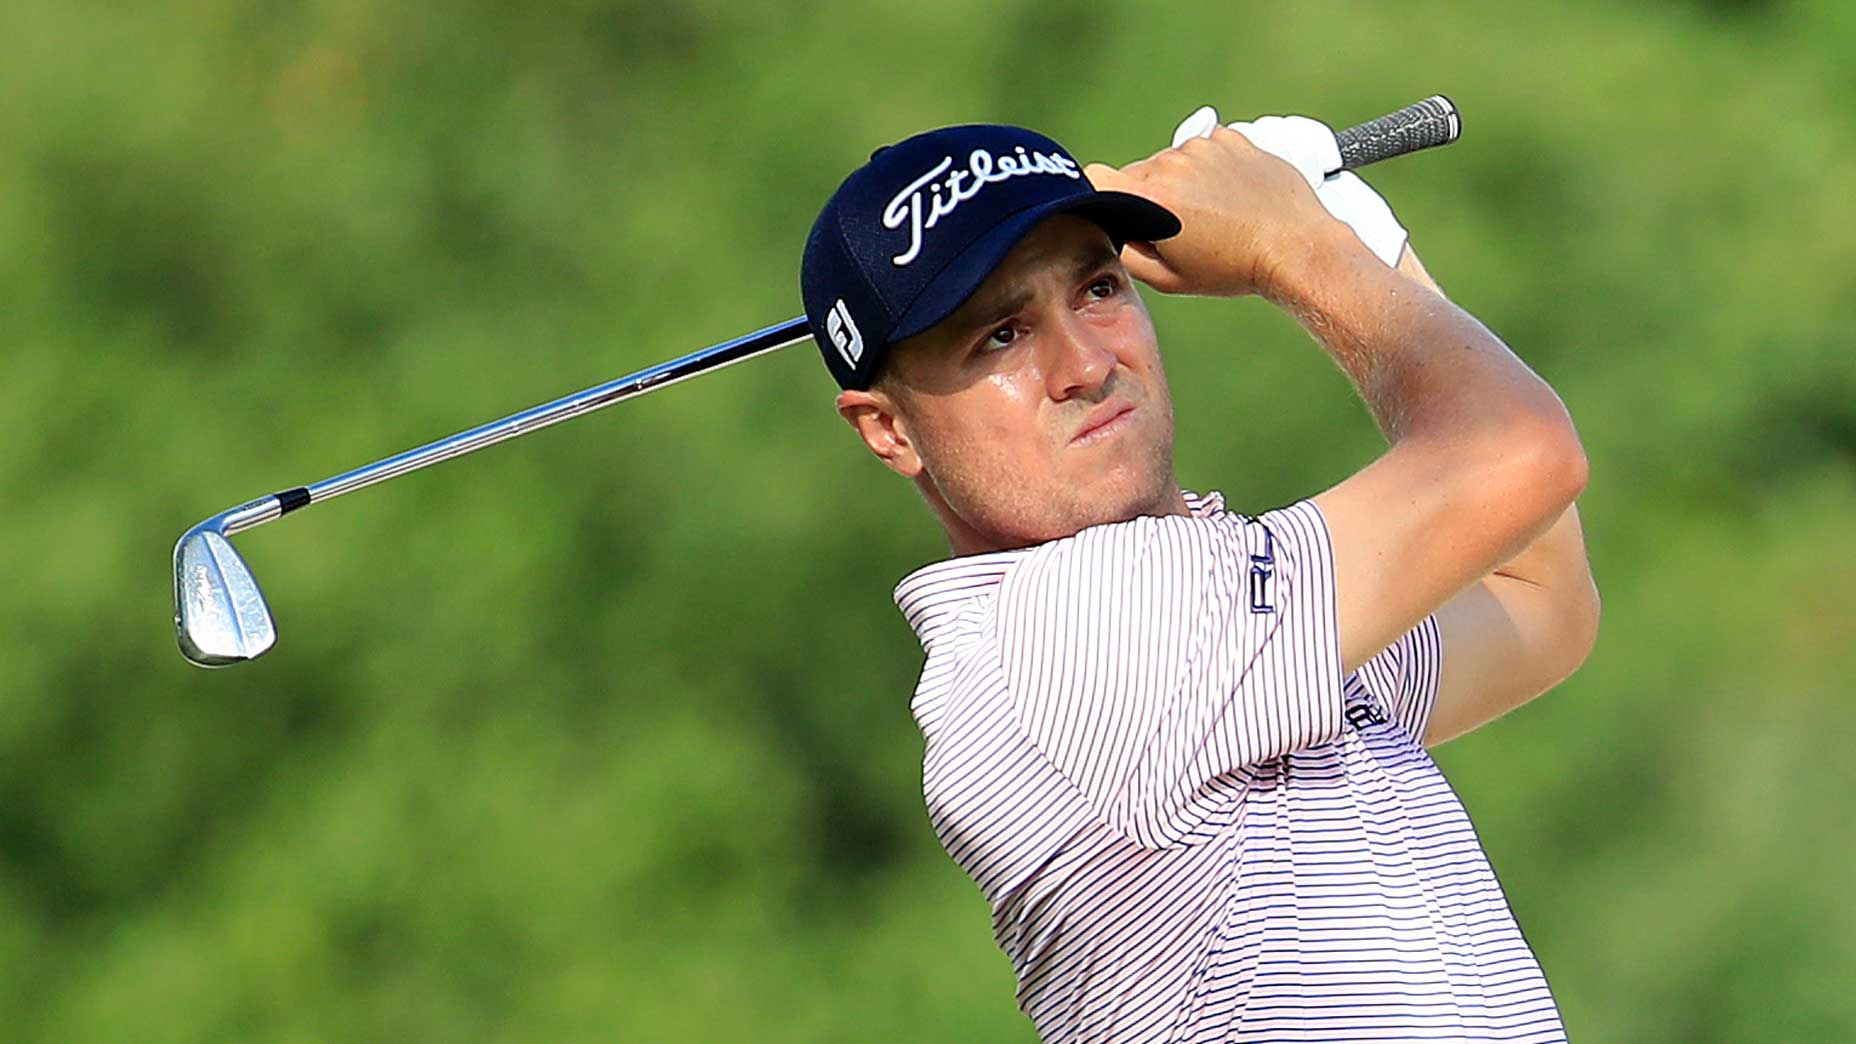 Justin Thomas Gives One Of The Most Brutal Reviews Of A Golf Shot Ever